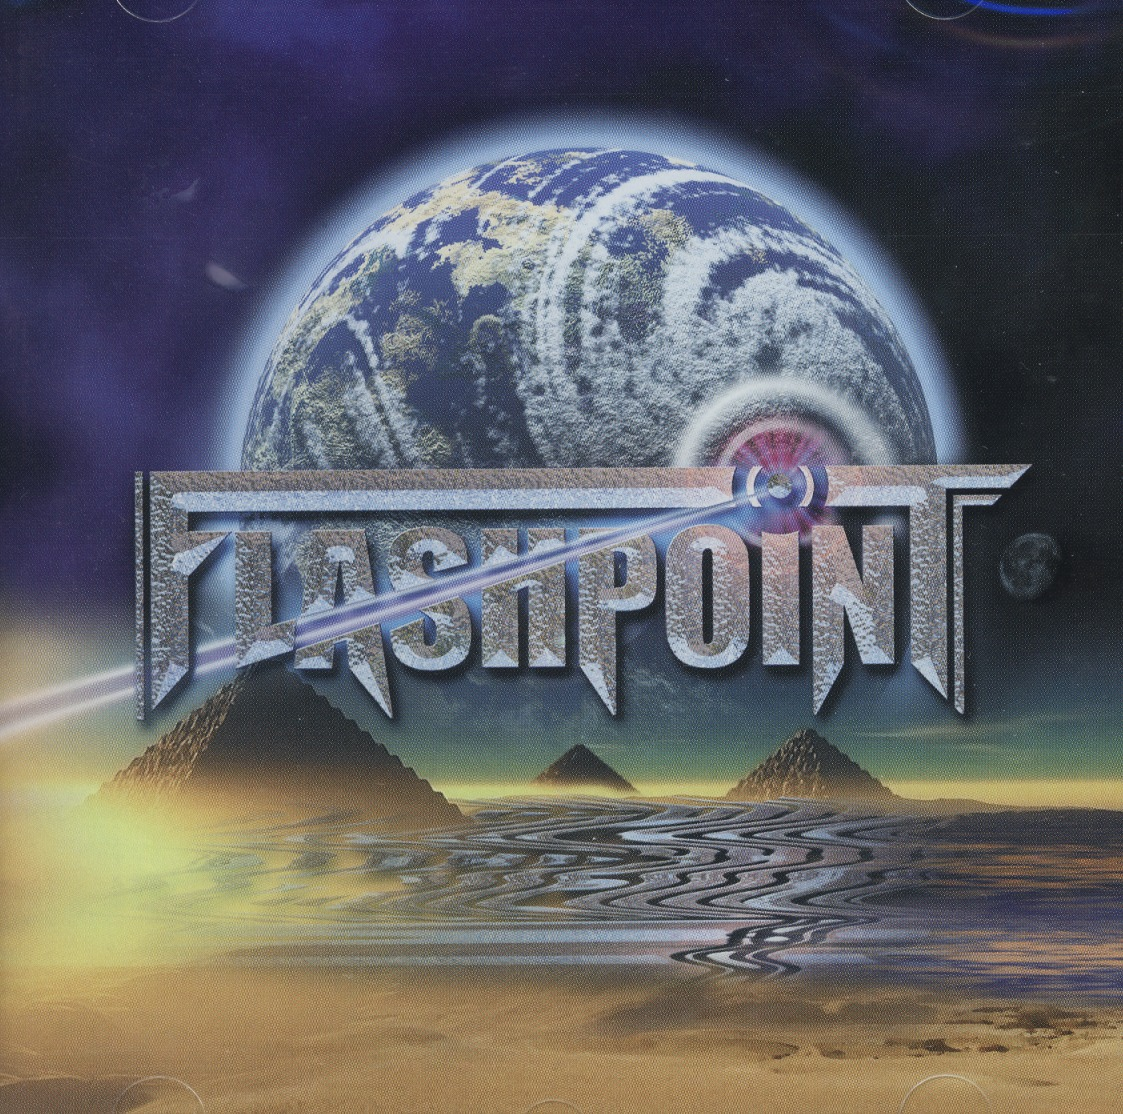 FLASHPOINT (UK) / Flashpoint